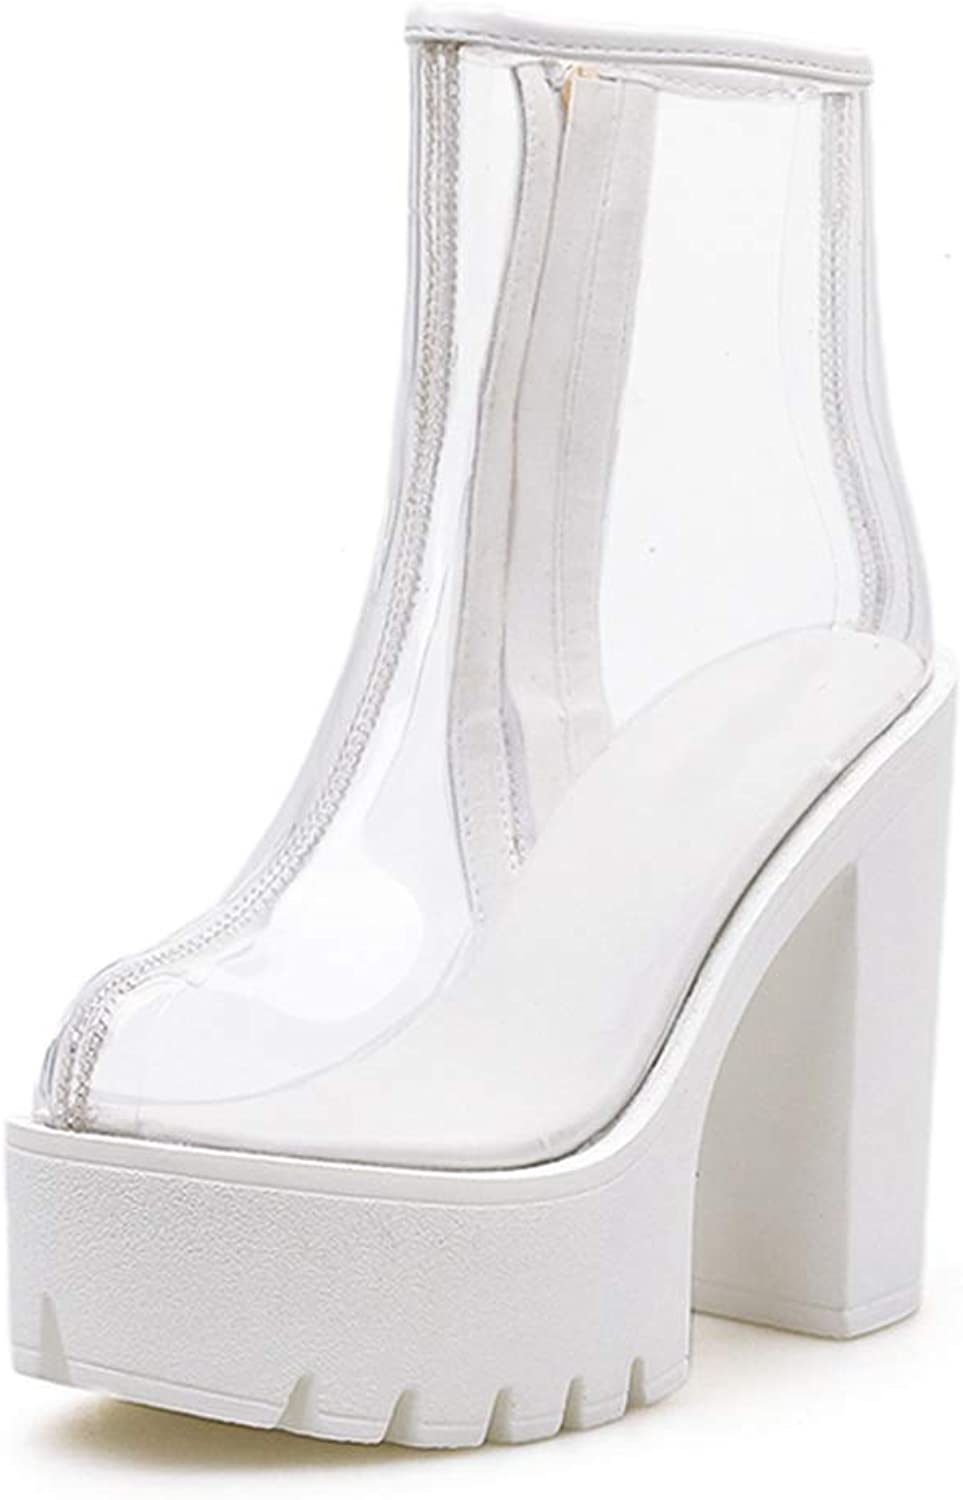 T-JULY White Boots PVC Transparent Boots Women Sexy High Heels Platform Boots Spring Autumn Ladies shoes Ankle Boots